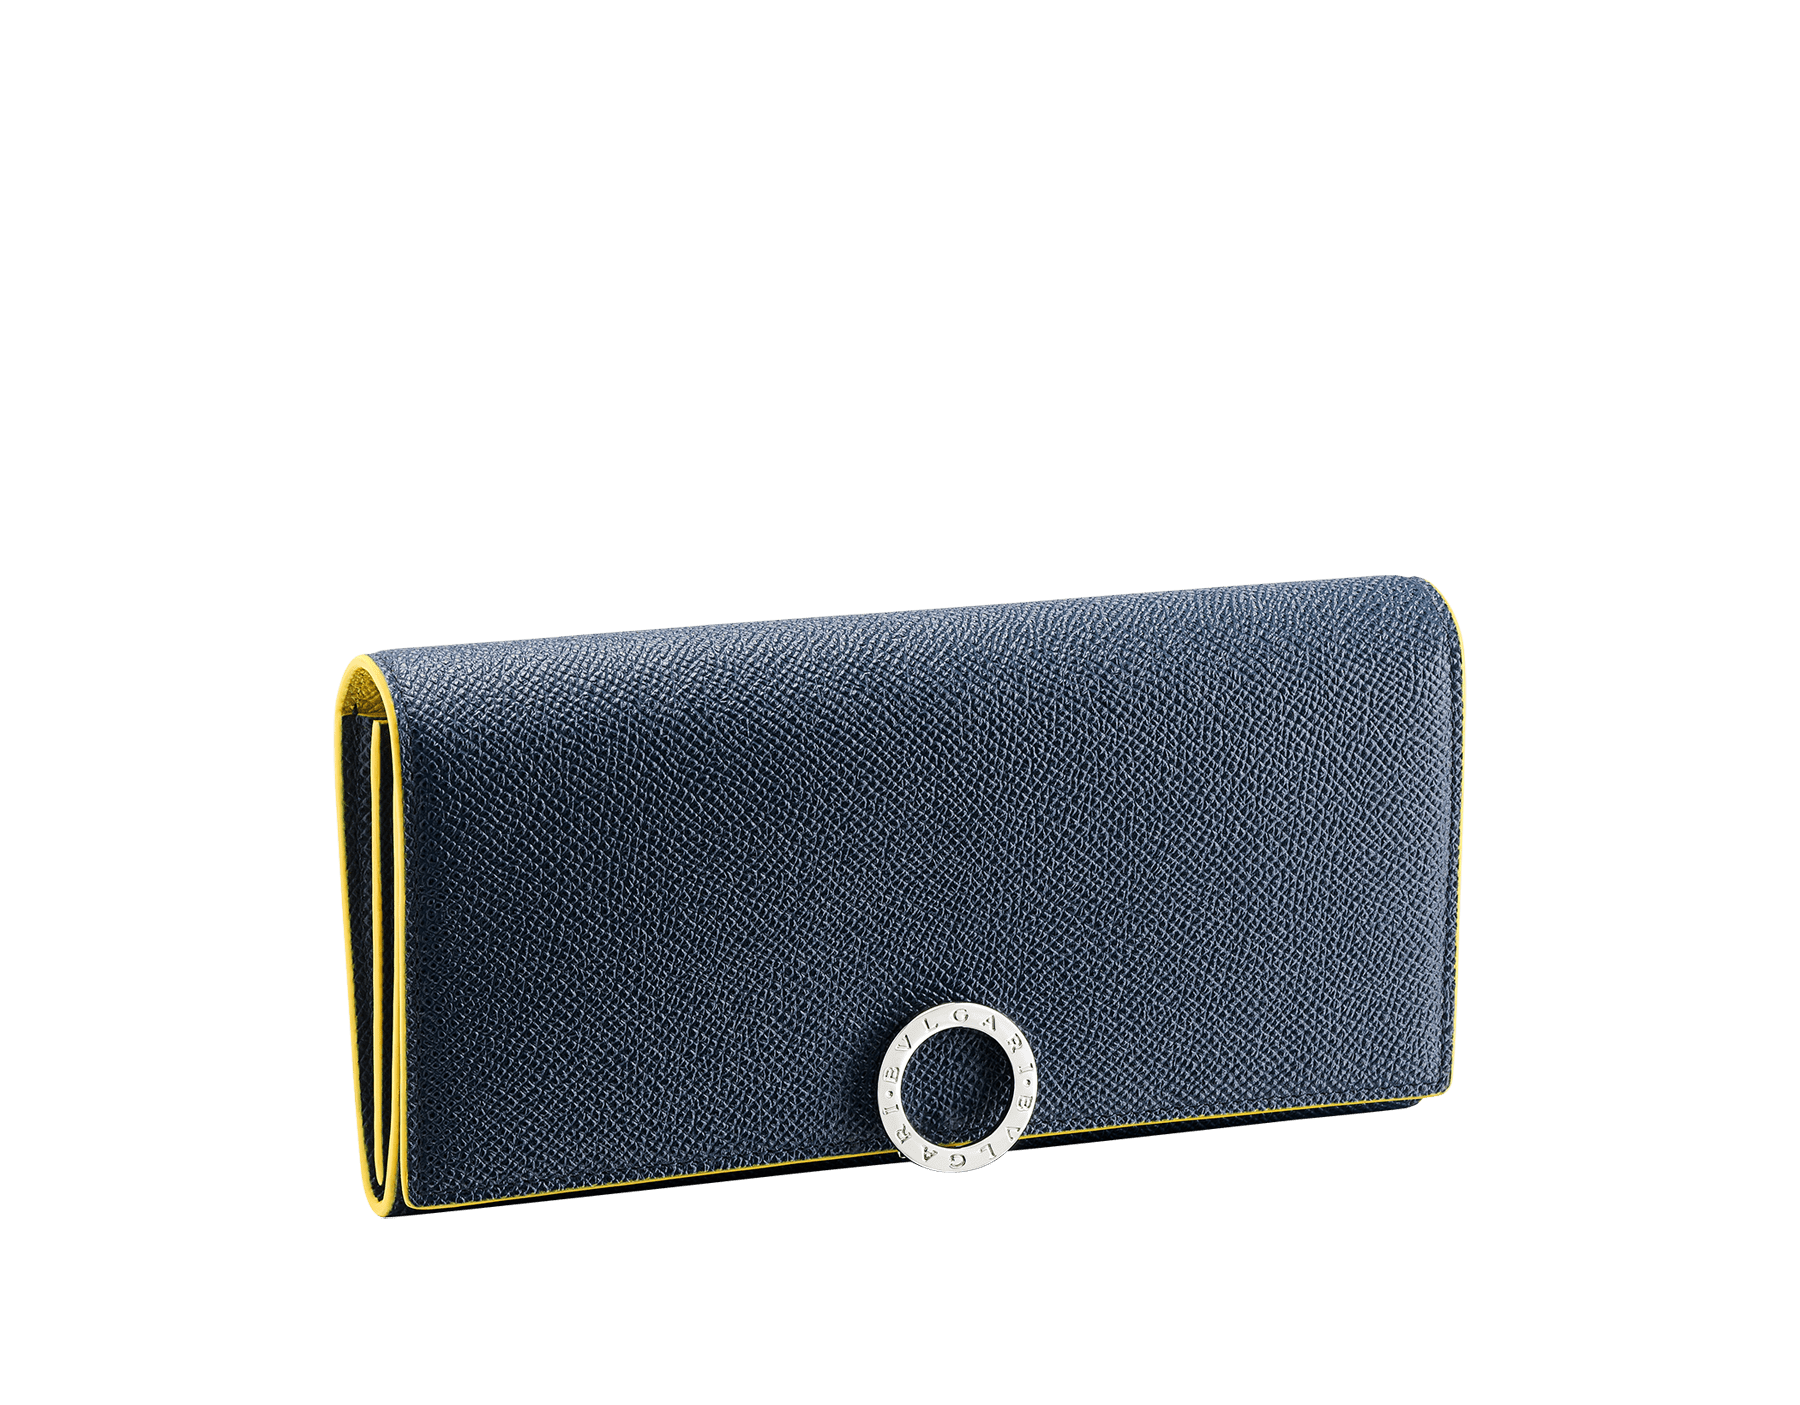 """""""BVLGARI BVLGARI"""" large wallet in mimetic jade and fire amber grain calf leather. Iconic logo closure clip in ruthenium plated brass. BCM-WLT-SLI-POC-CLb image 1"""